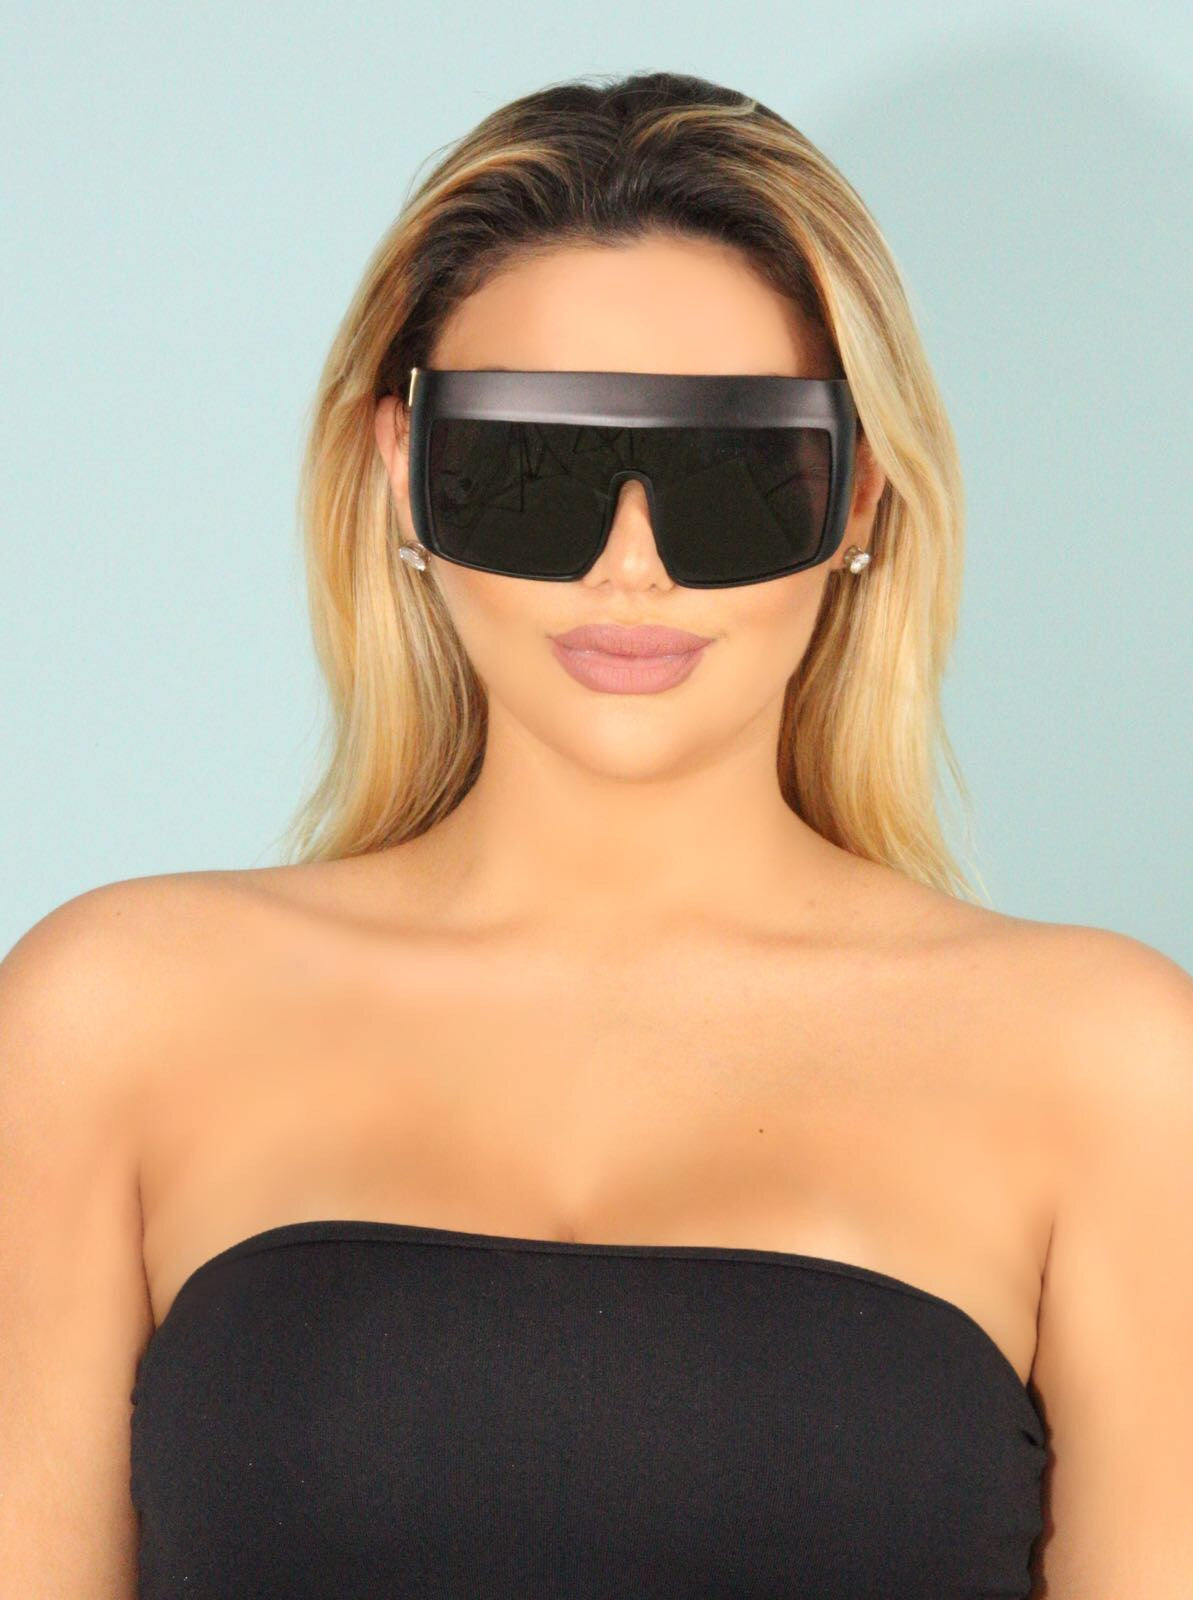 The Cardi B Shades